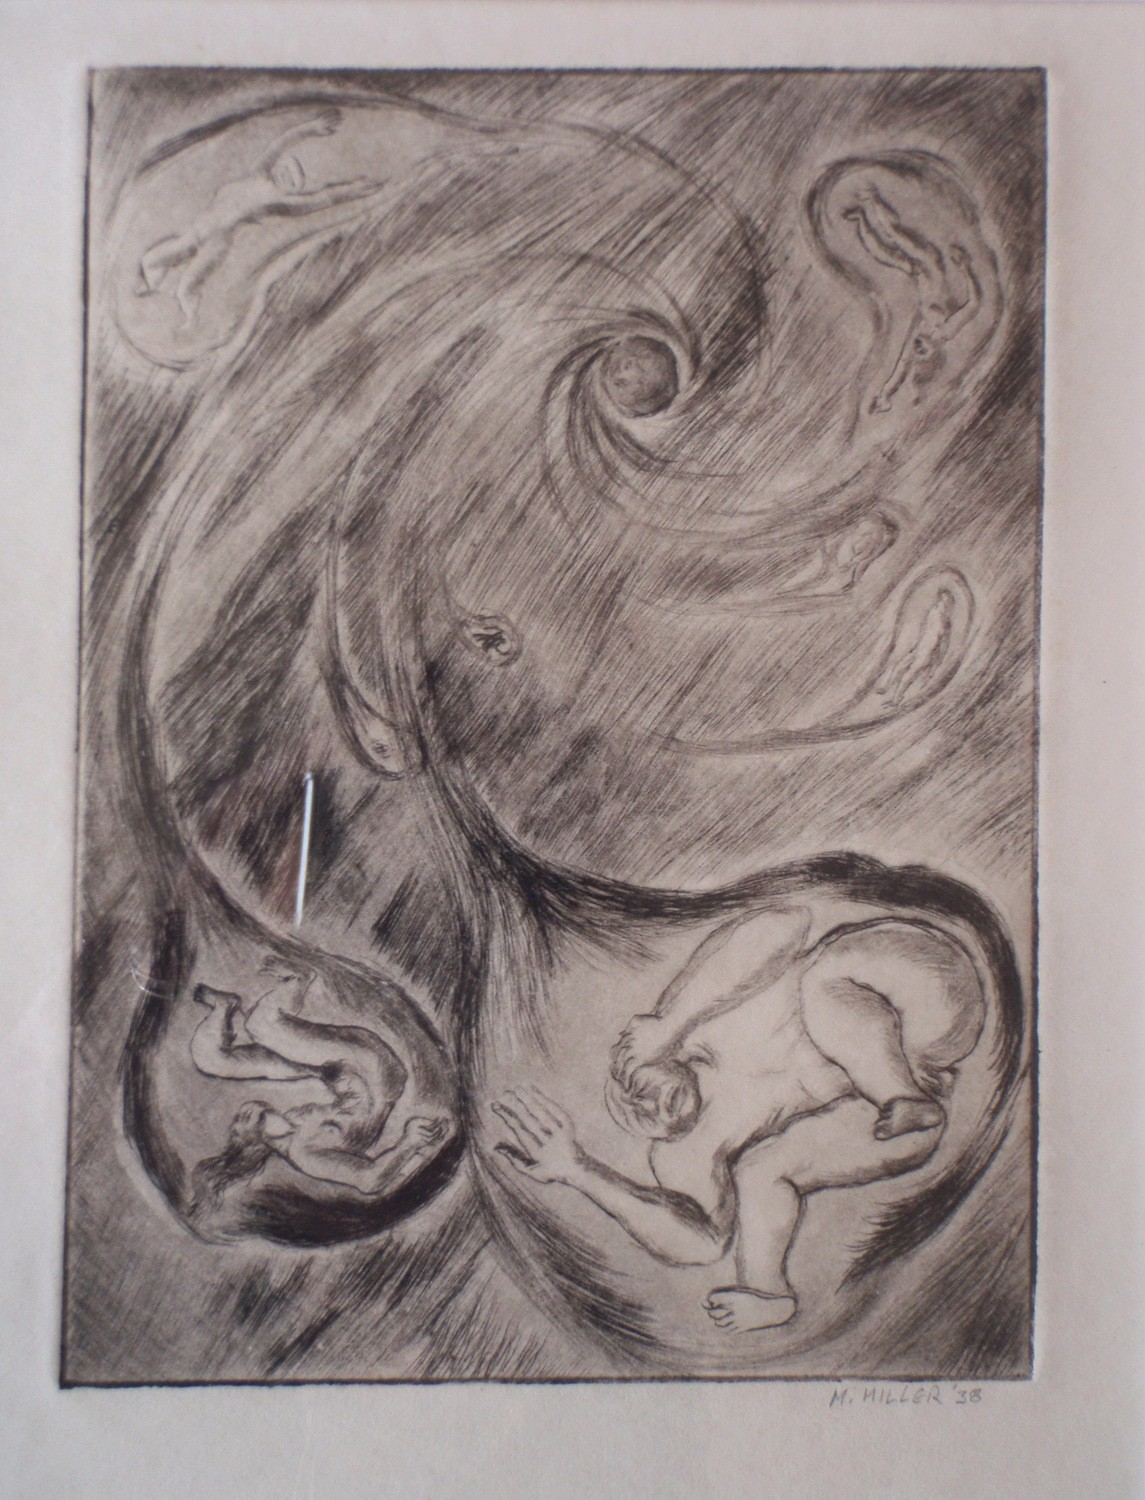 Art Deco Sgd M. Miller 1938 Cosmic Birth of Humanity Framed Etching